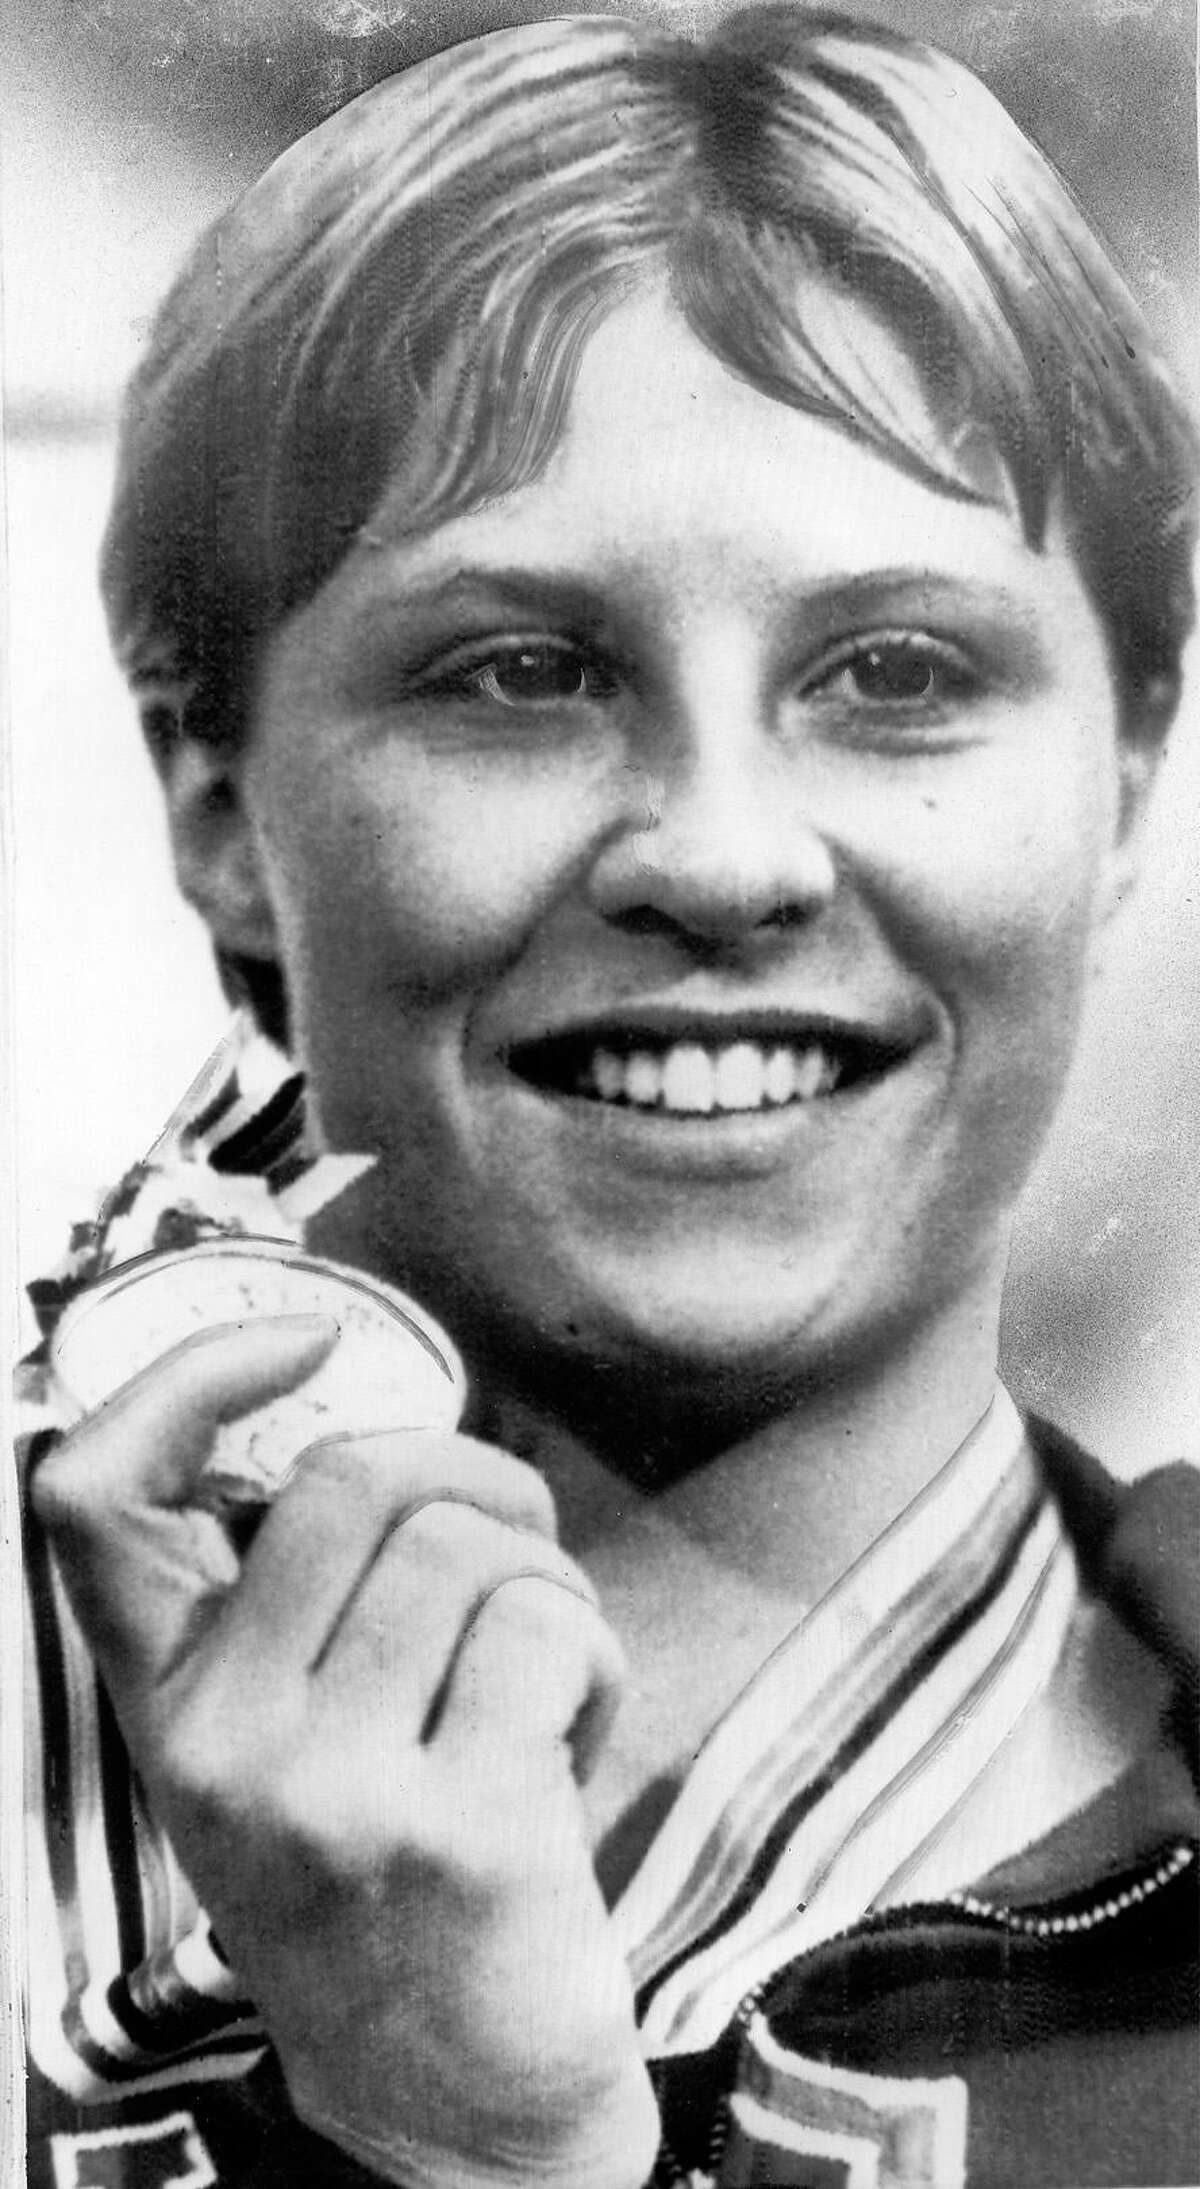 Donna de Varona, 17, shows the gold medal she won by taking the women's 400-meter individual medley swim event at the Olympics in Tokyo in 1964.